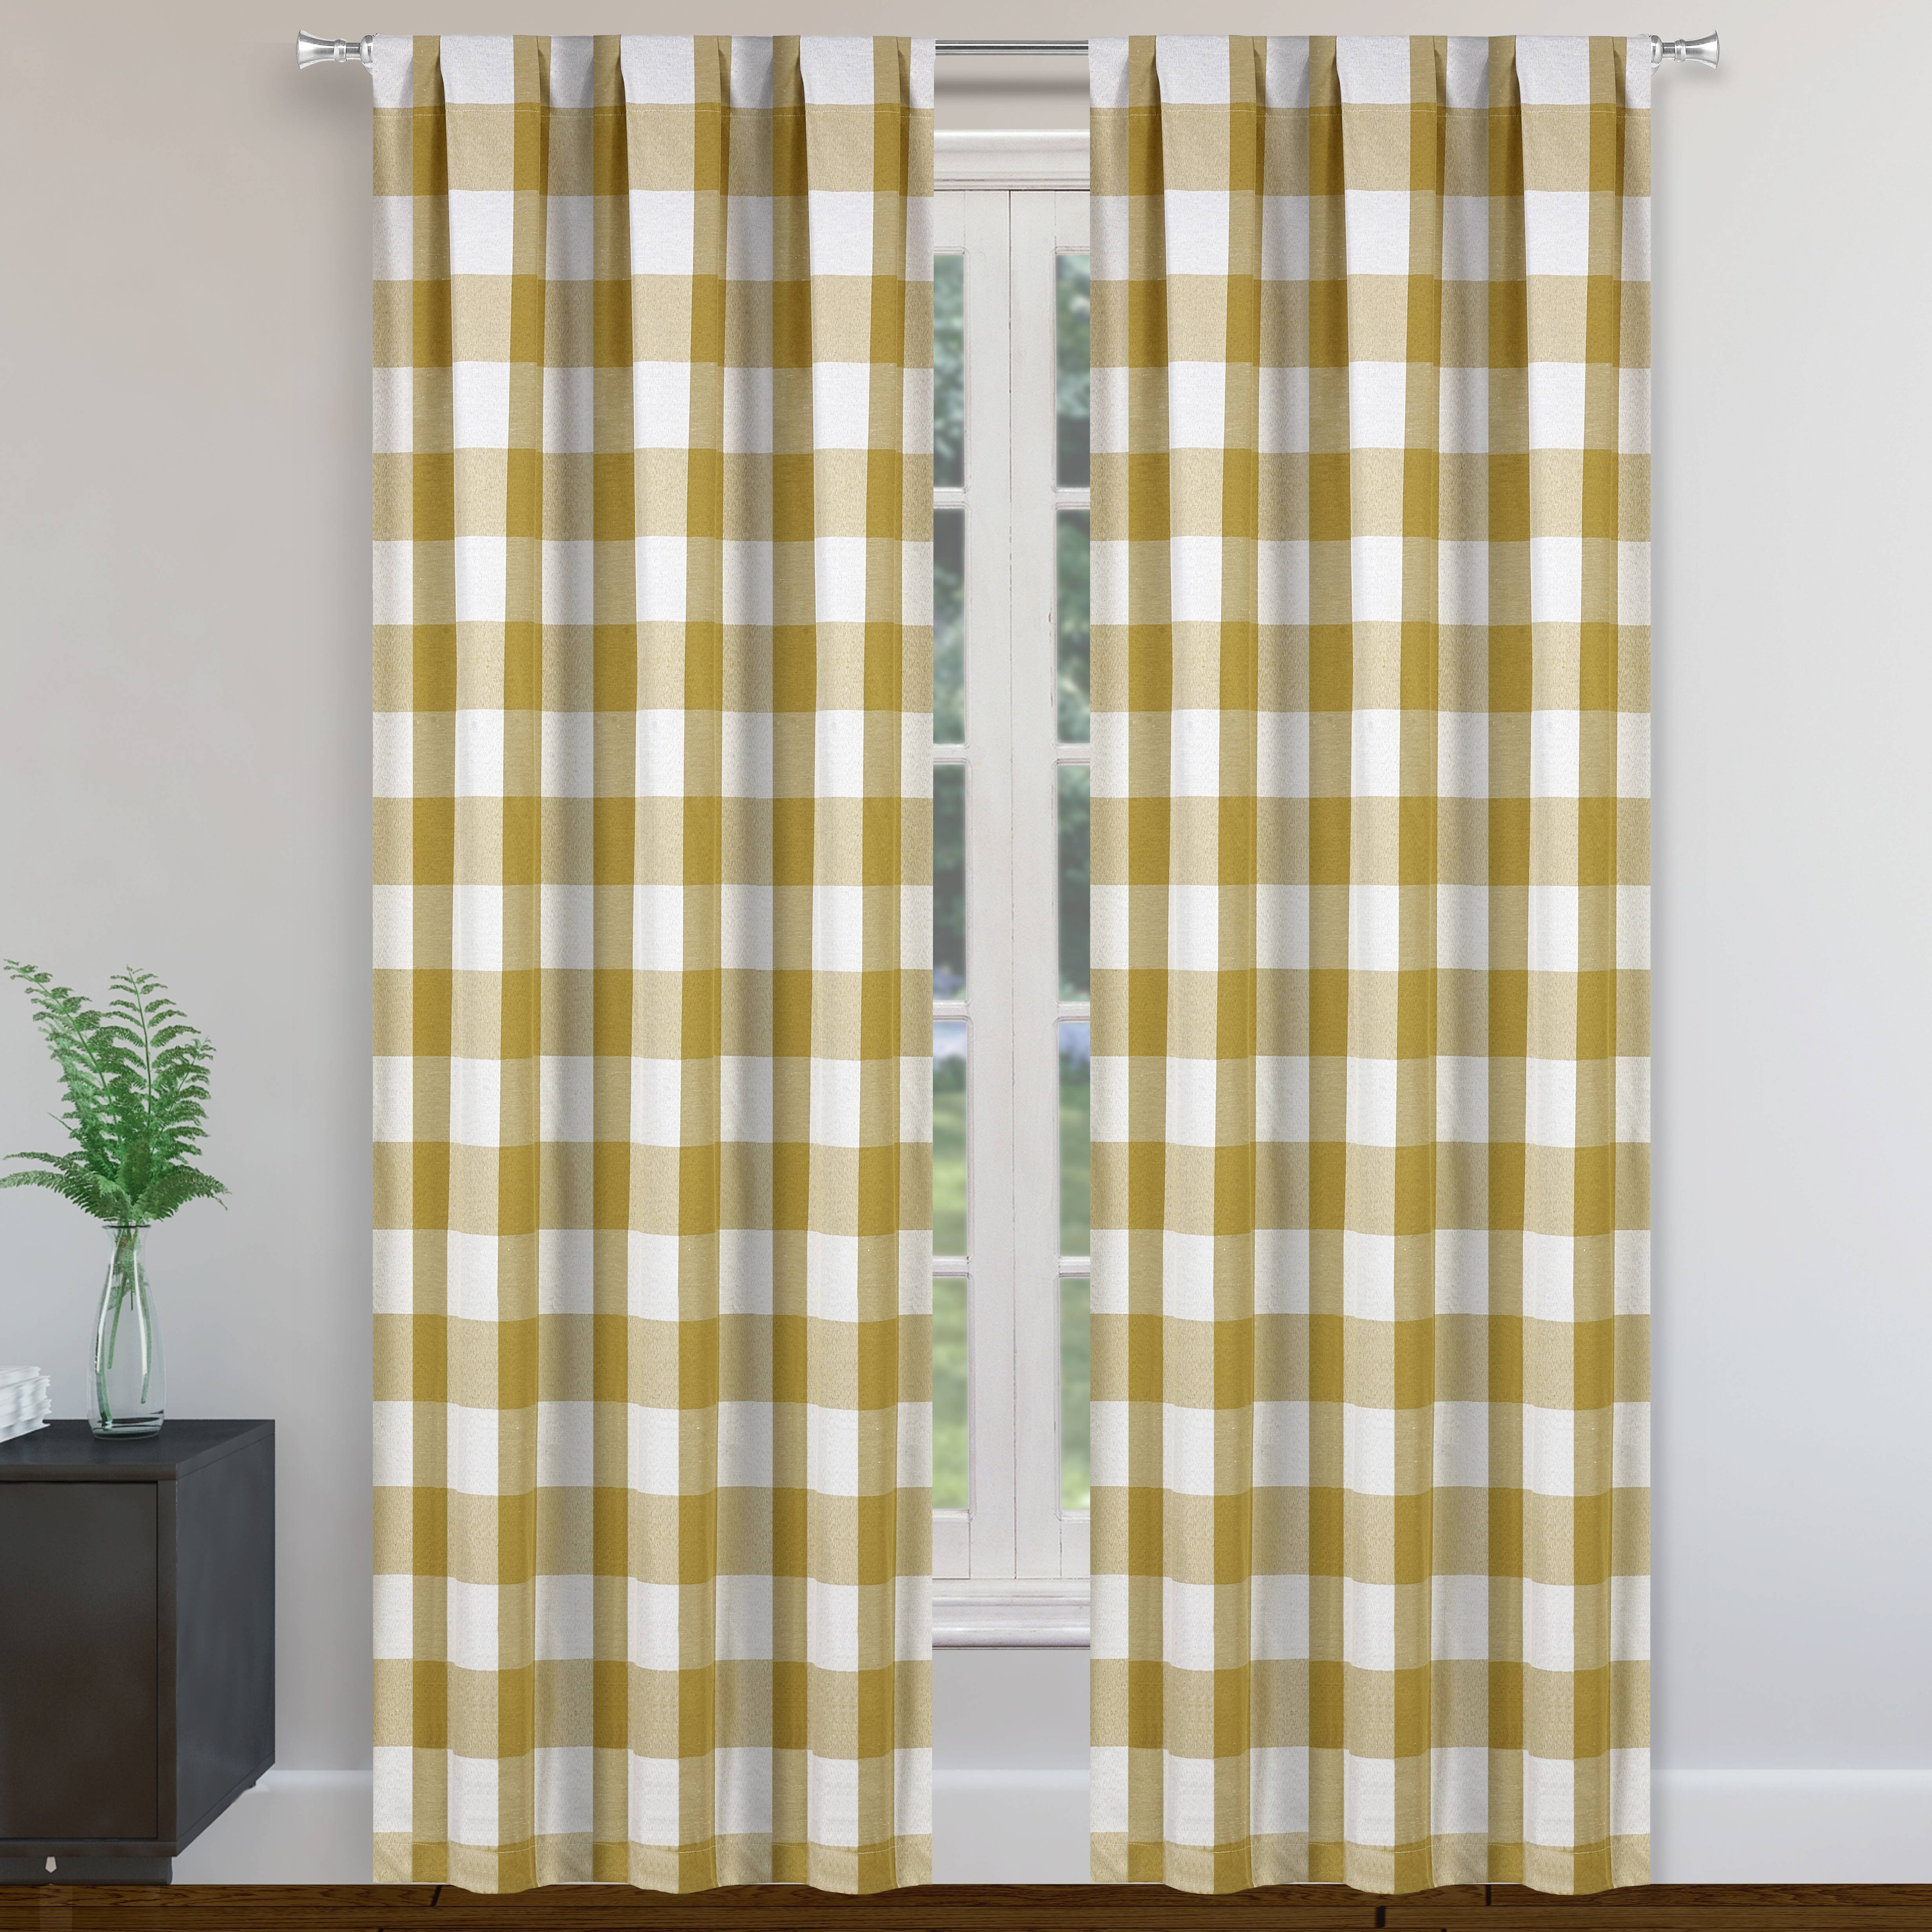 Country Orange Blackout Curtains You Ll Love In 2021 Wayfair